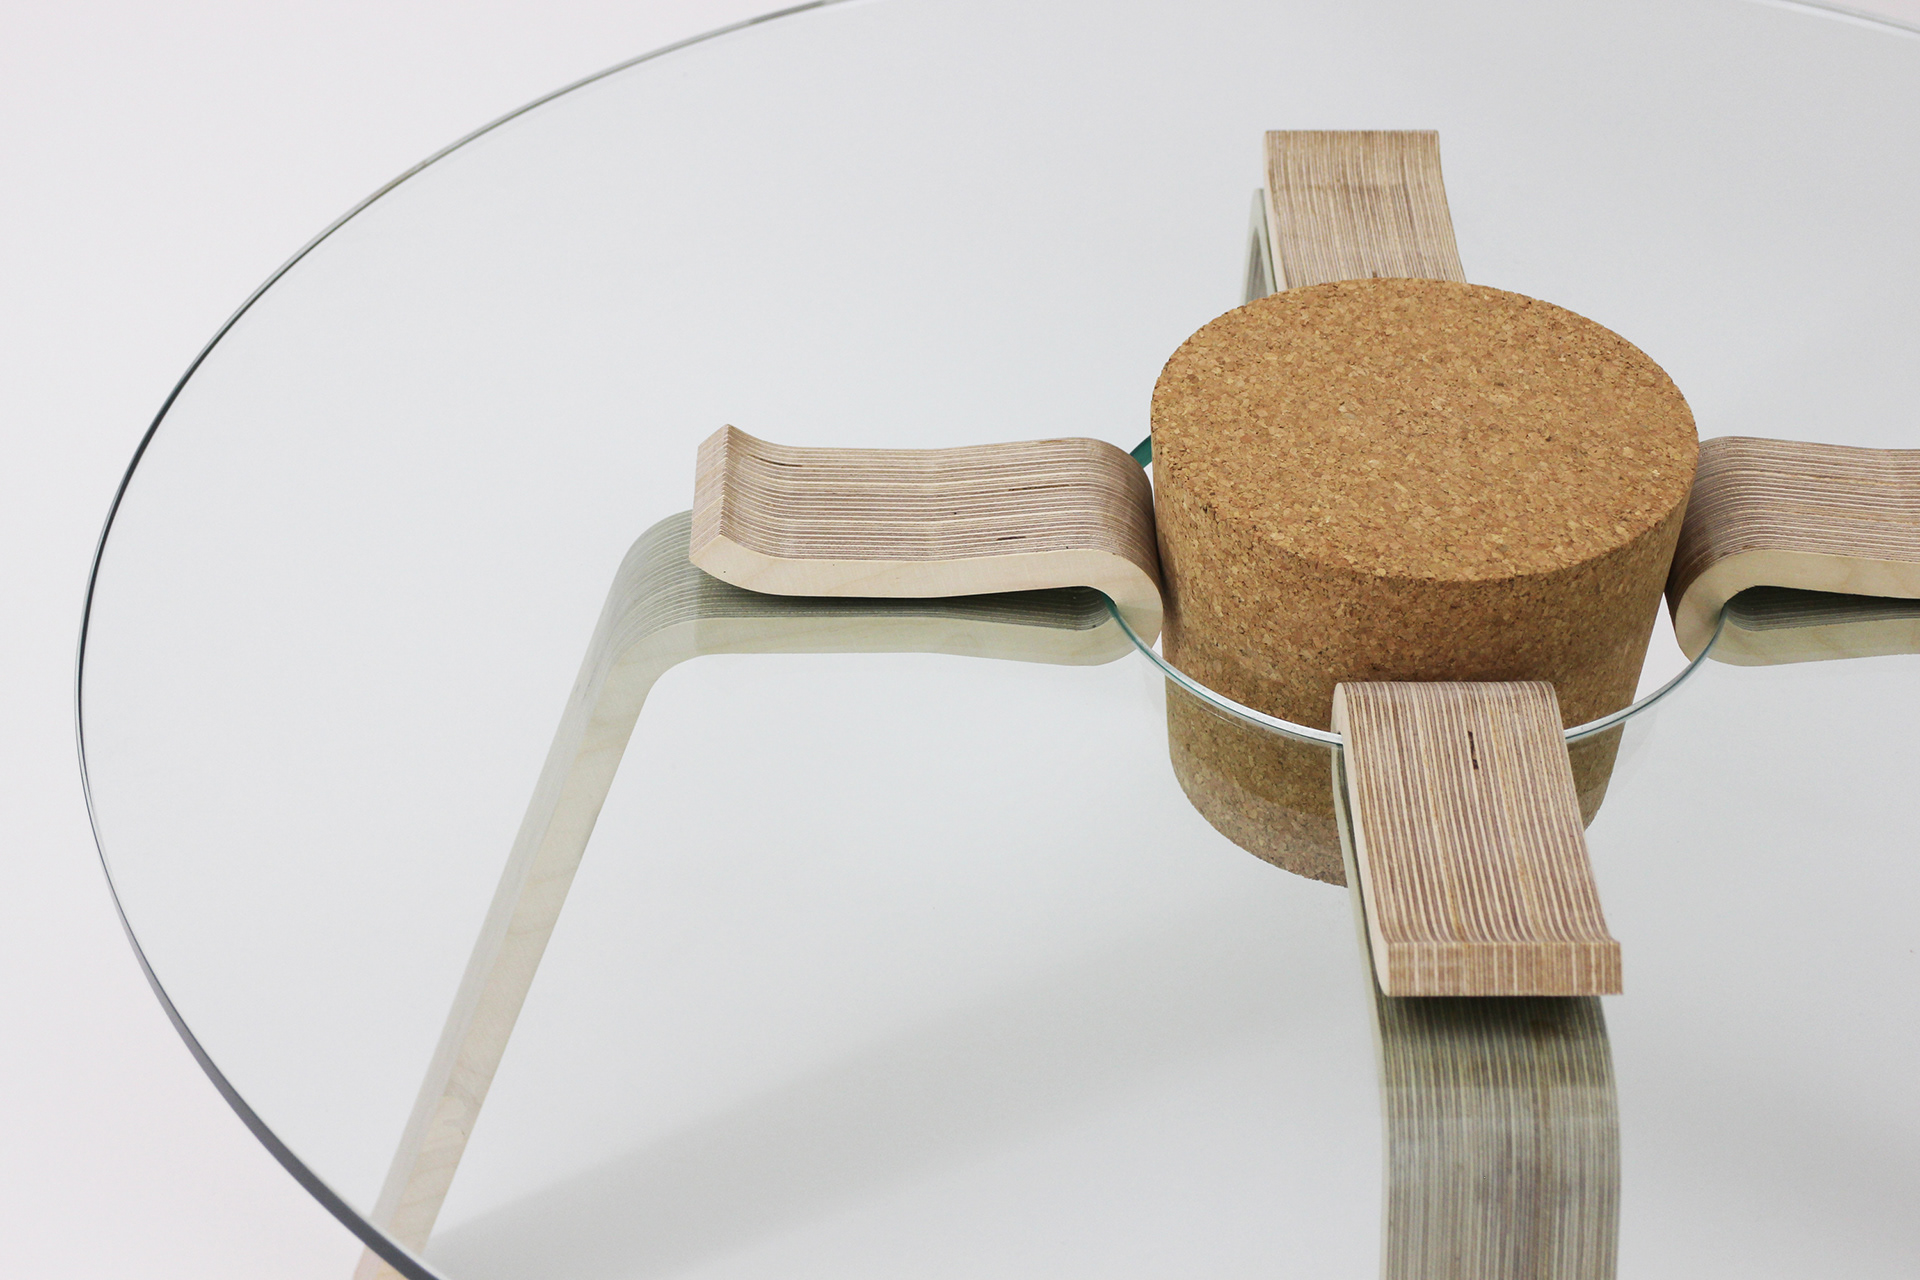 Modern Glass Table Is Held Together With A Cork Stopper Designs